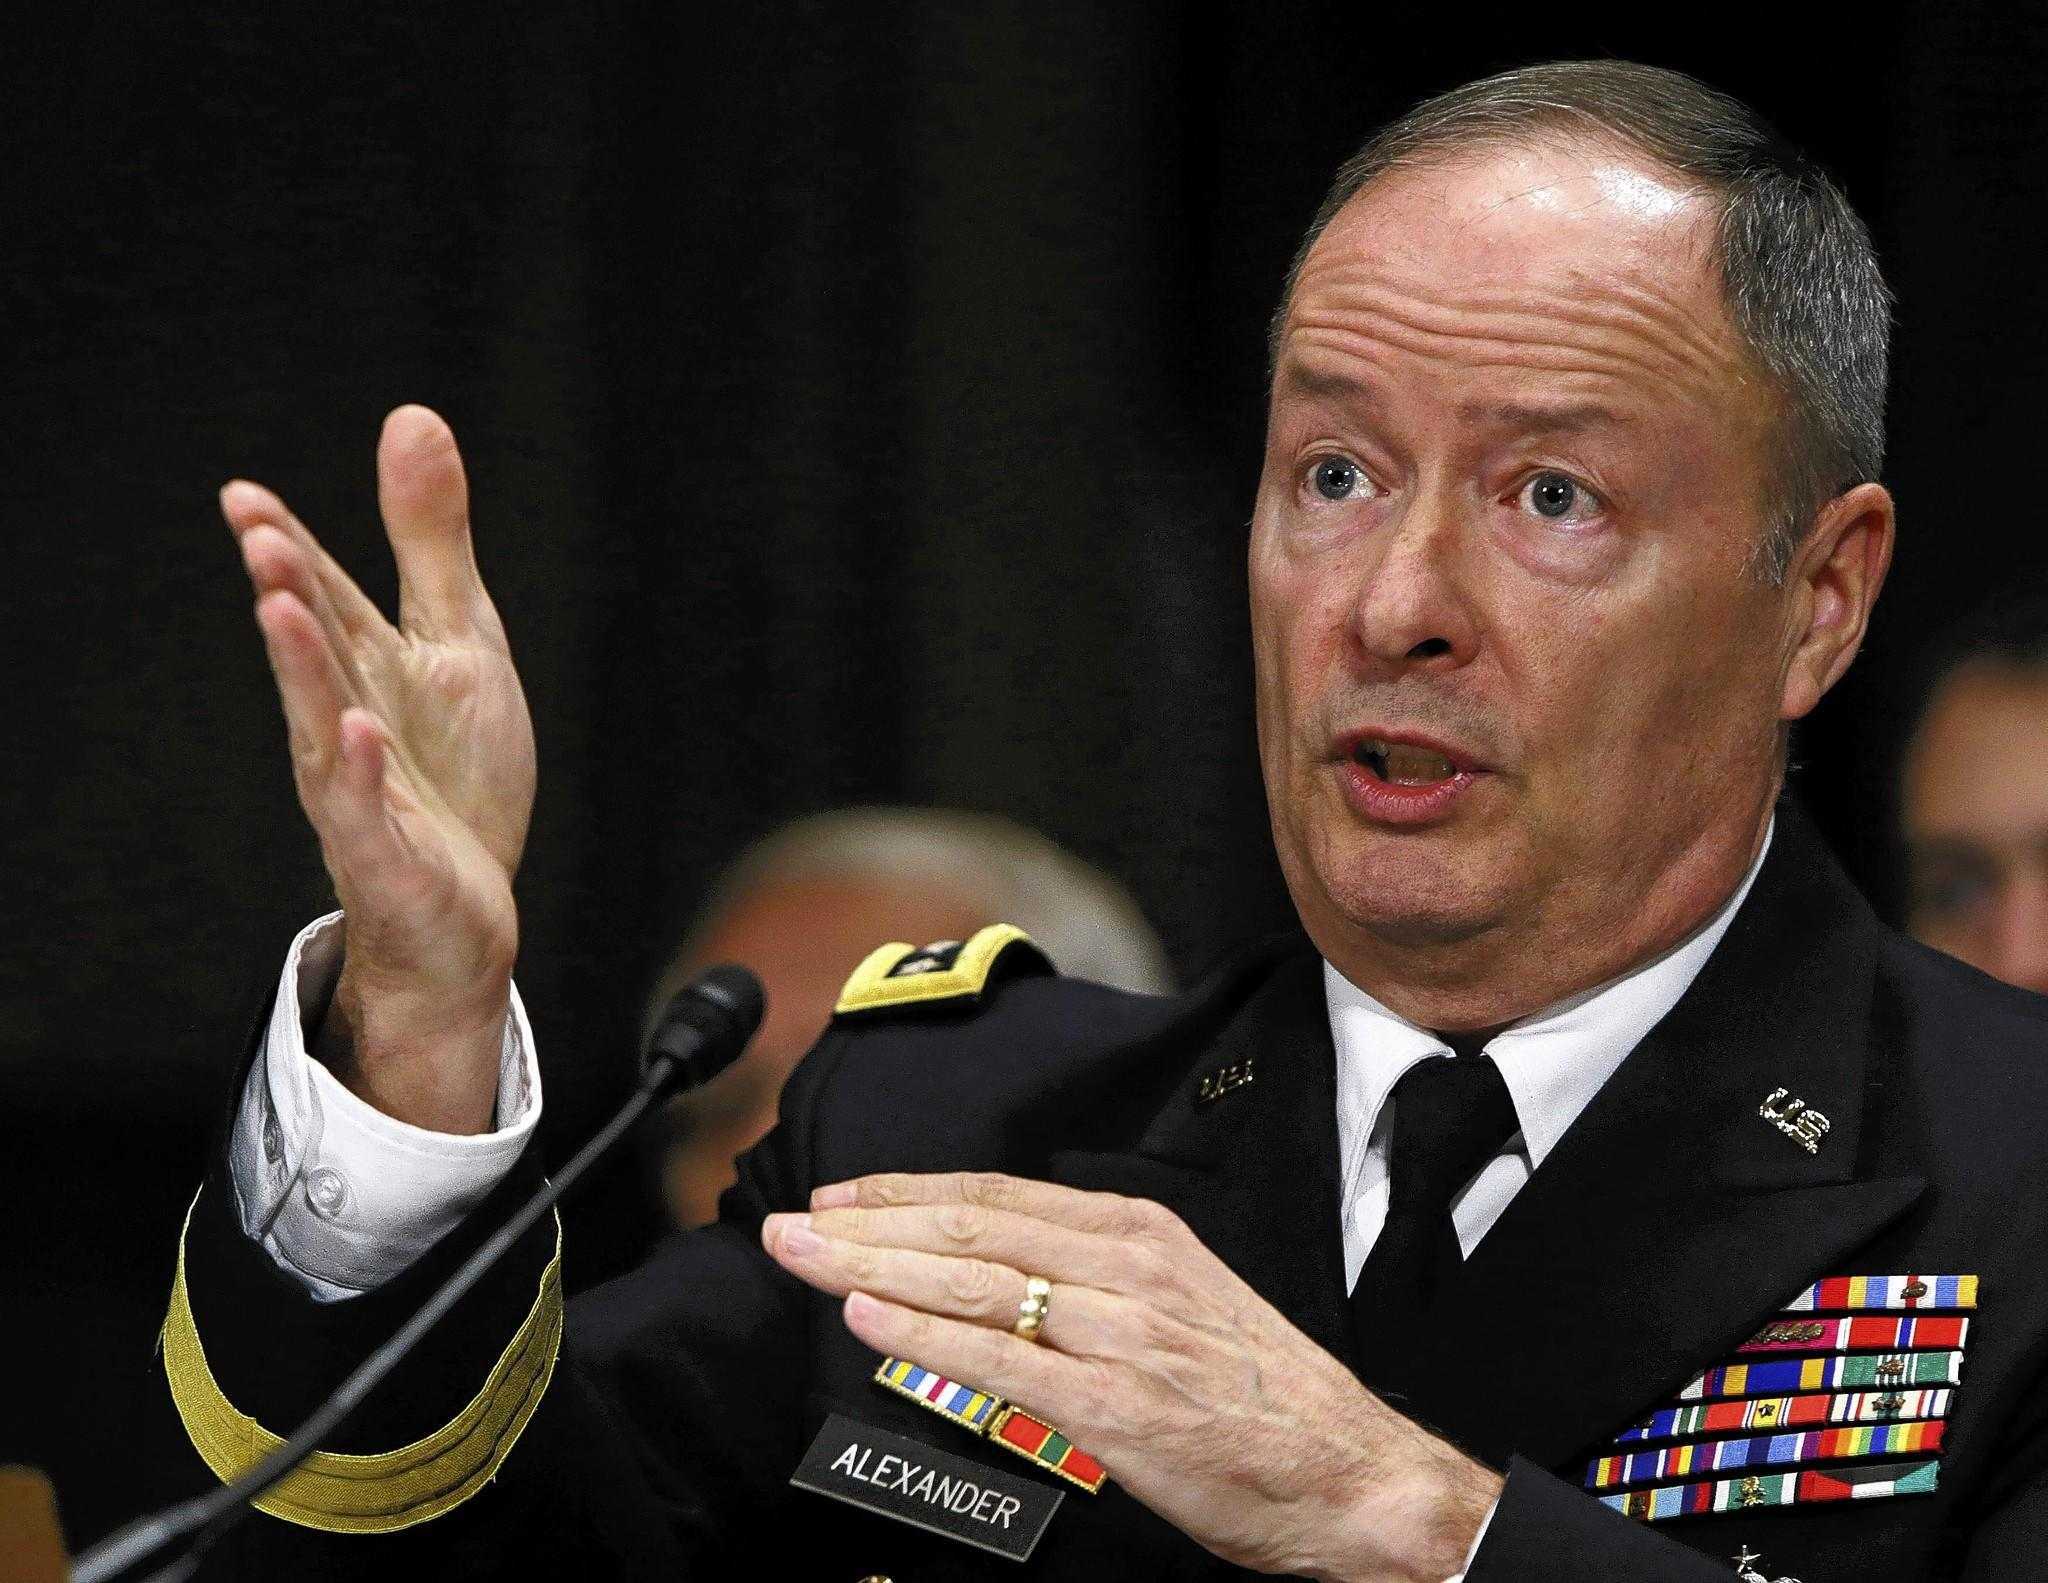 National Security Agency Director Gen. Keith Alexander testifies before the Senate Judiciary Committee in Washington on Dec. 11.